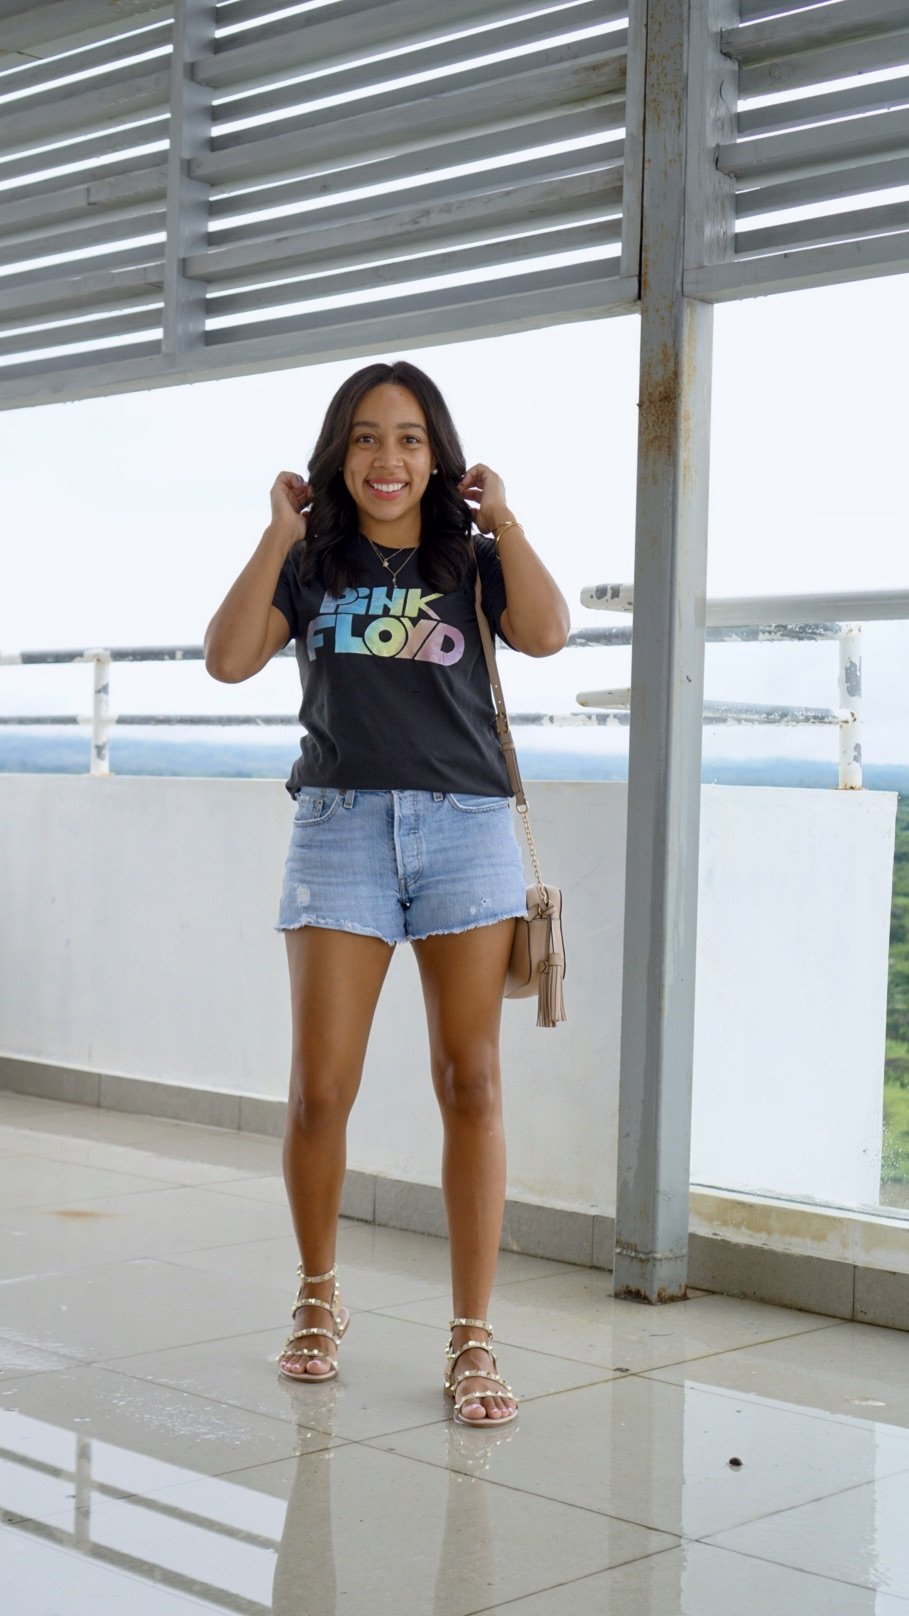 Trendy Thursday LinkUP + Where to Shop for Affordable Graphic Band Tees